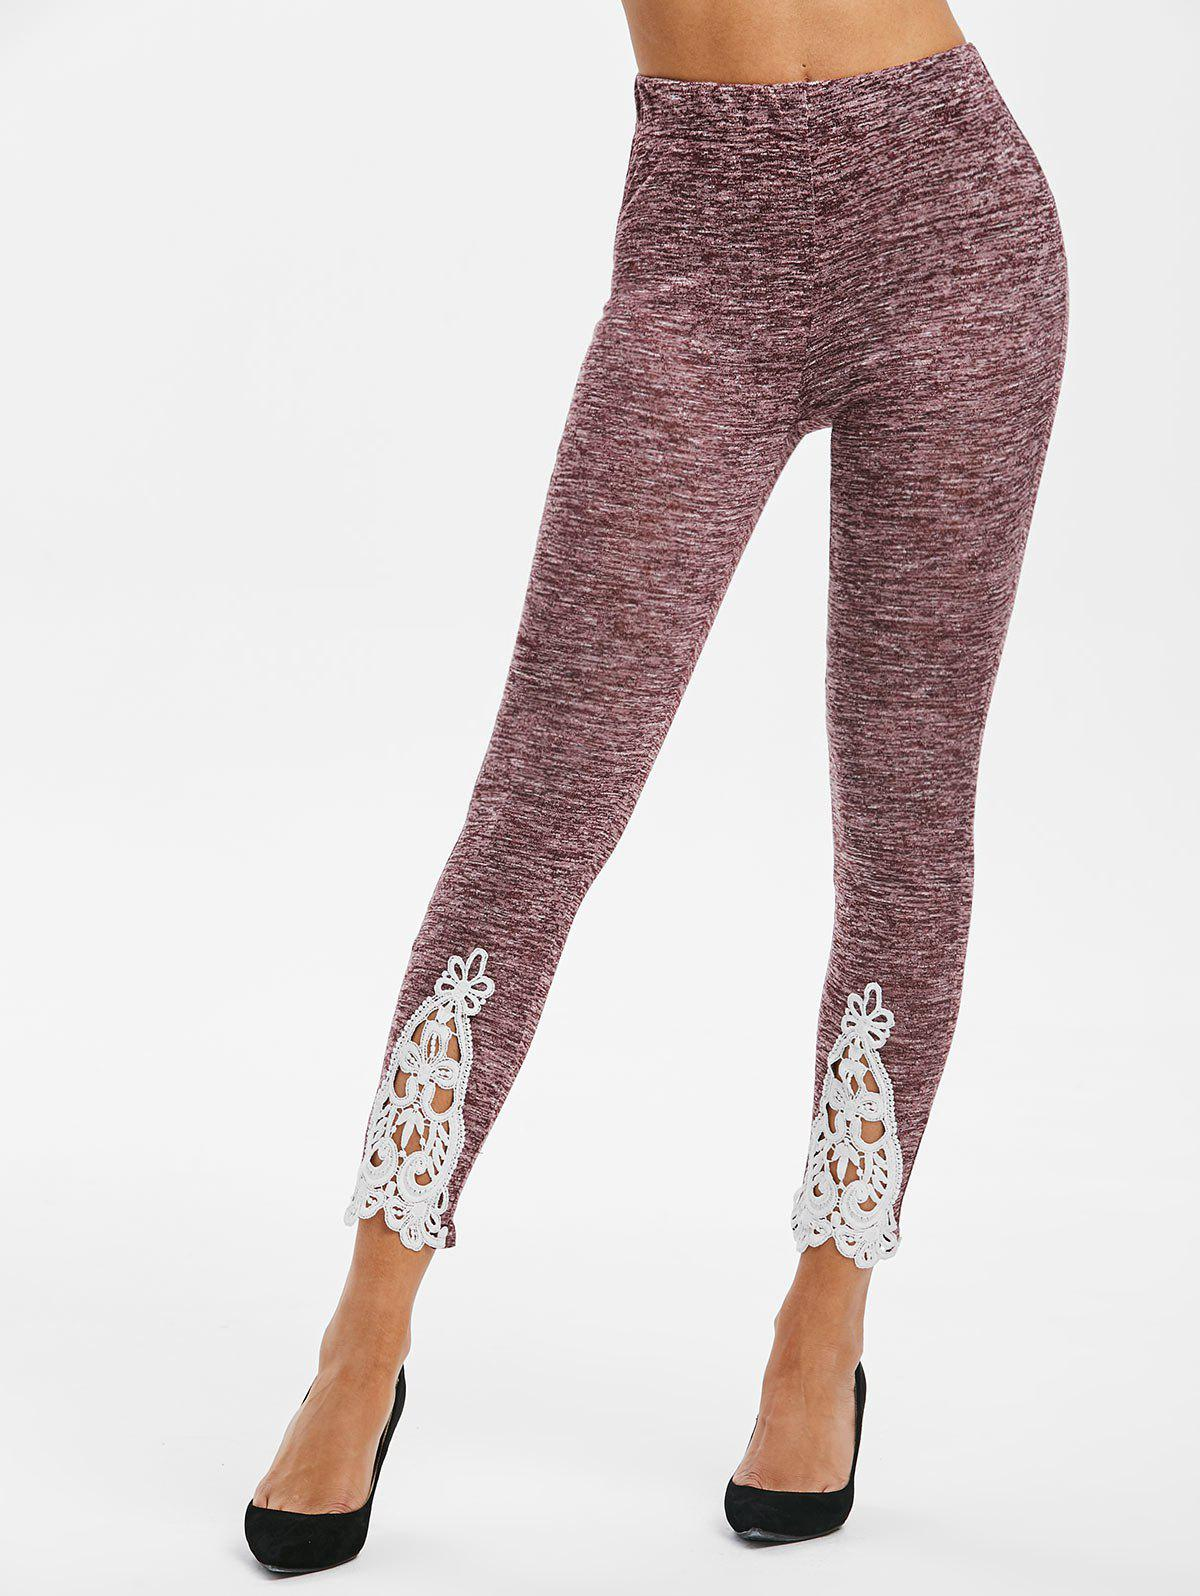 New Lace Insert High Waisted Heathered Leggings